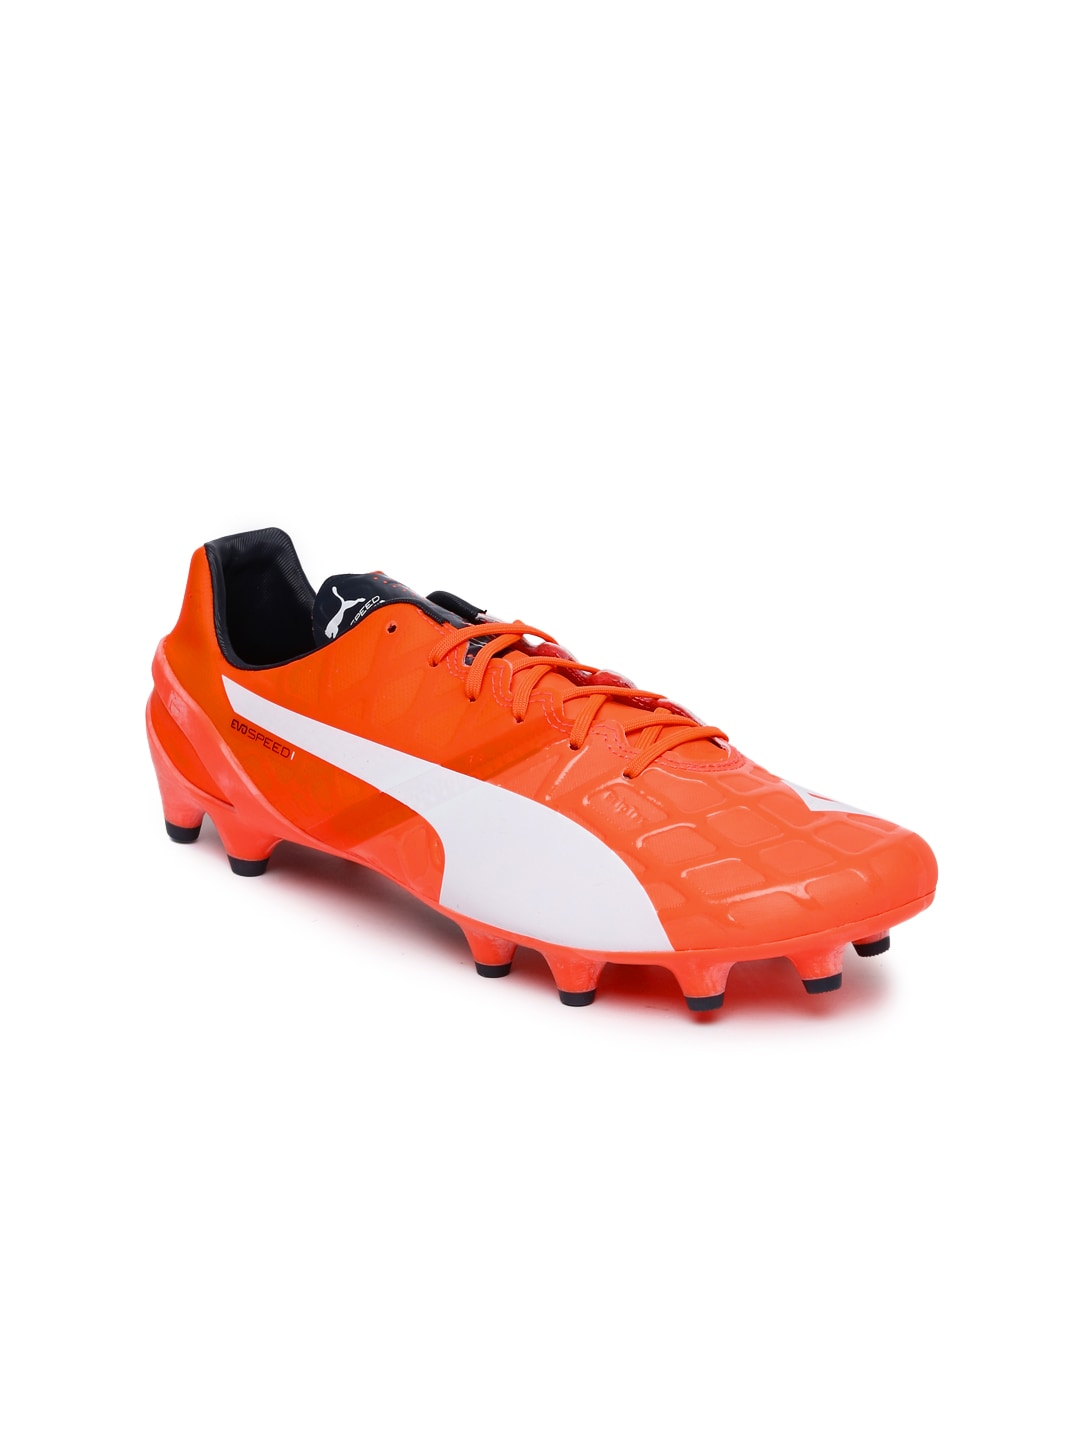 c8ec668d749b Buy Puma Men Pink Football Shoes - Sports Shoes for Men 935514